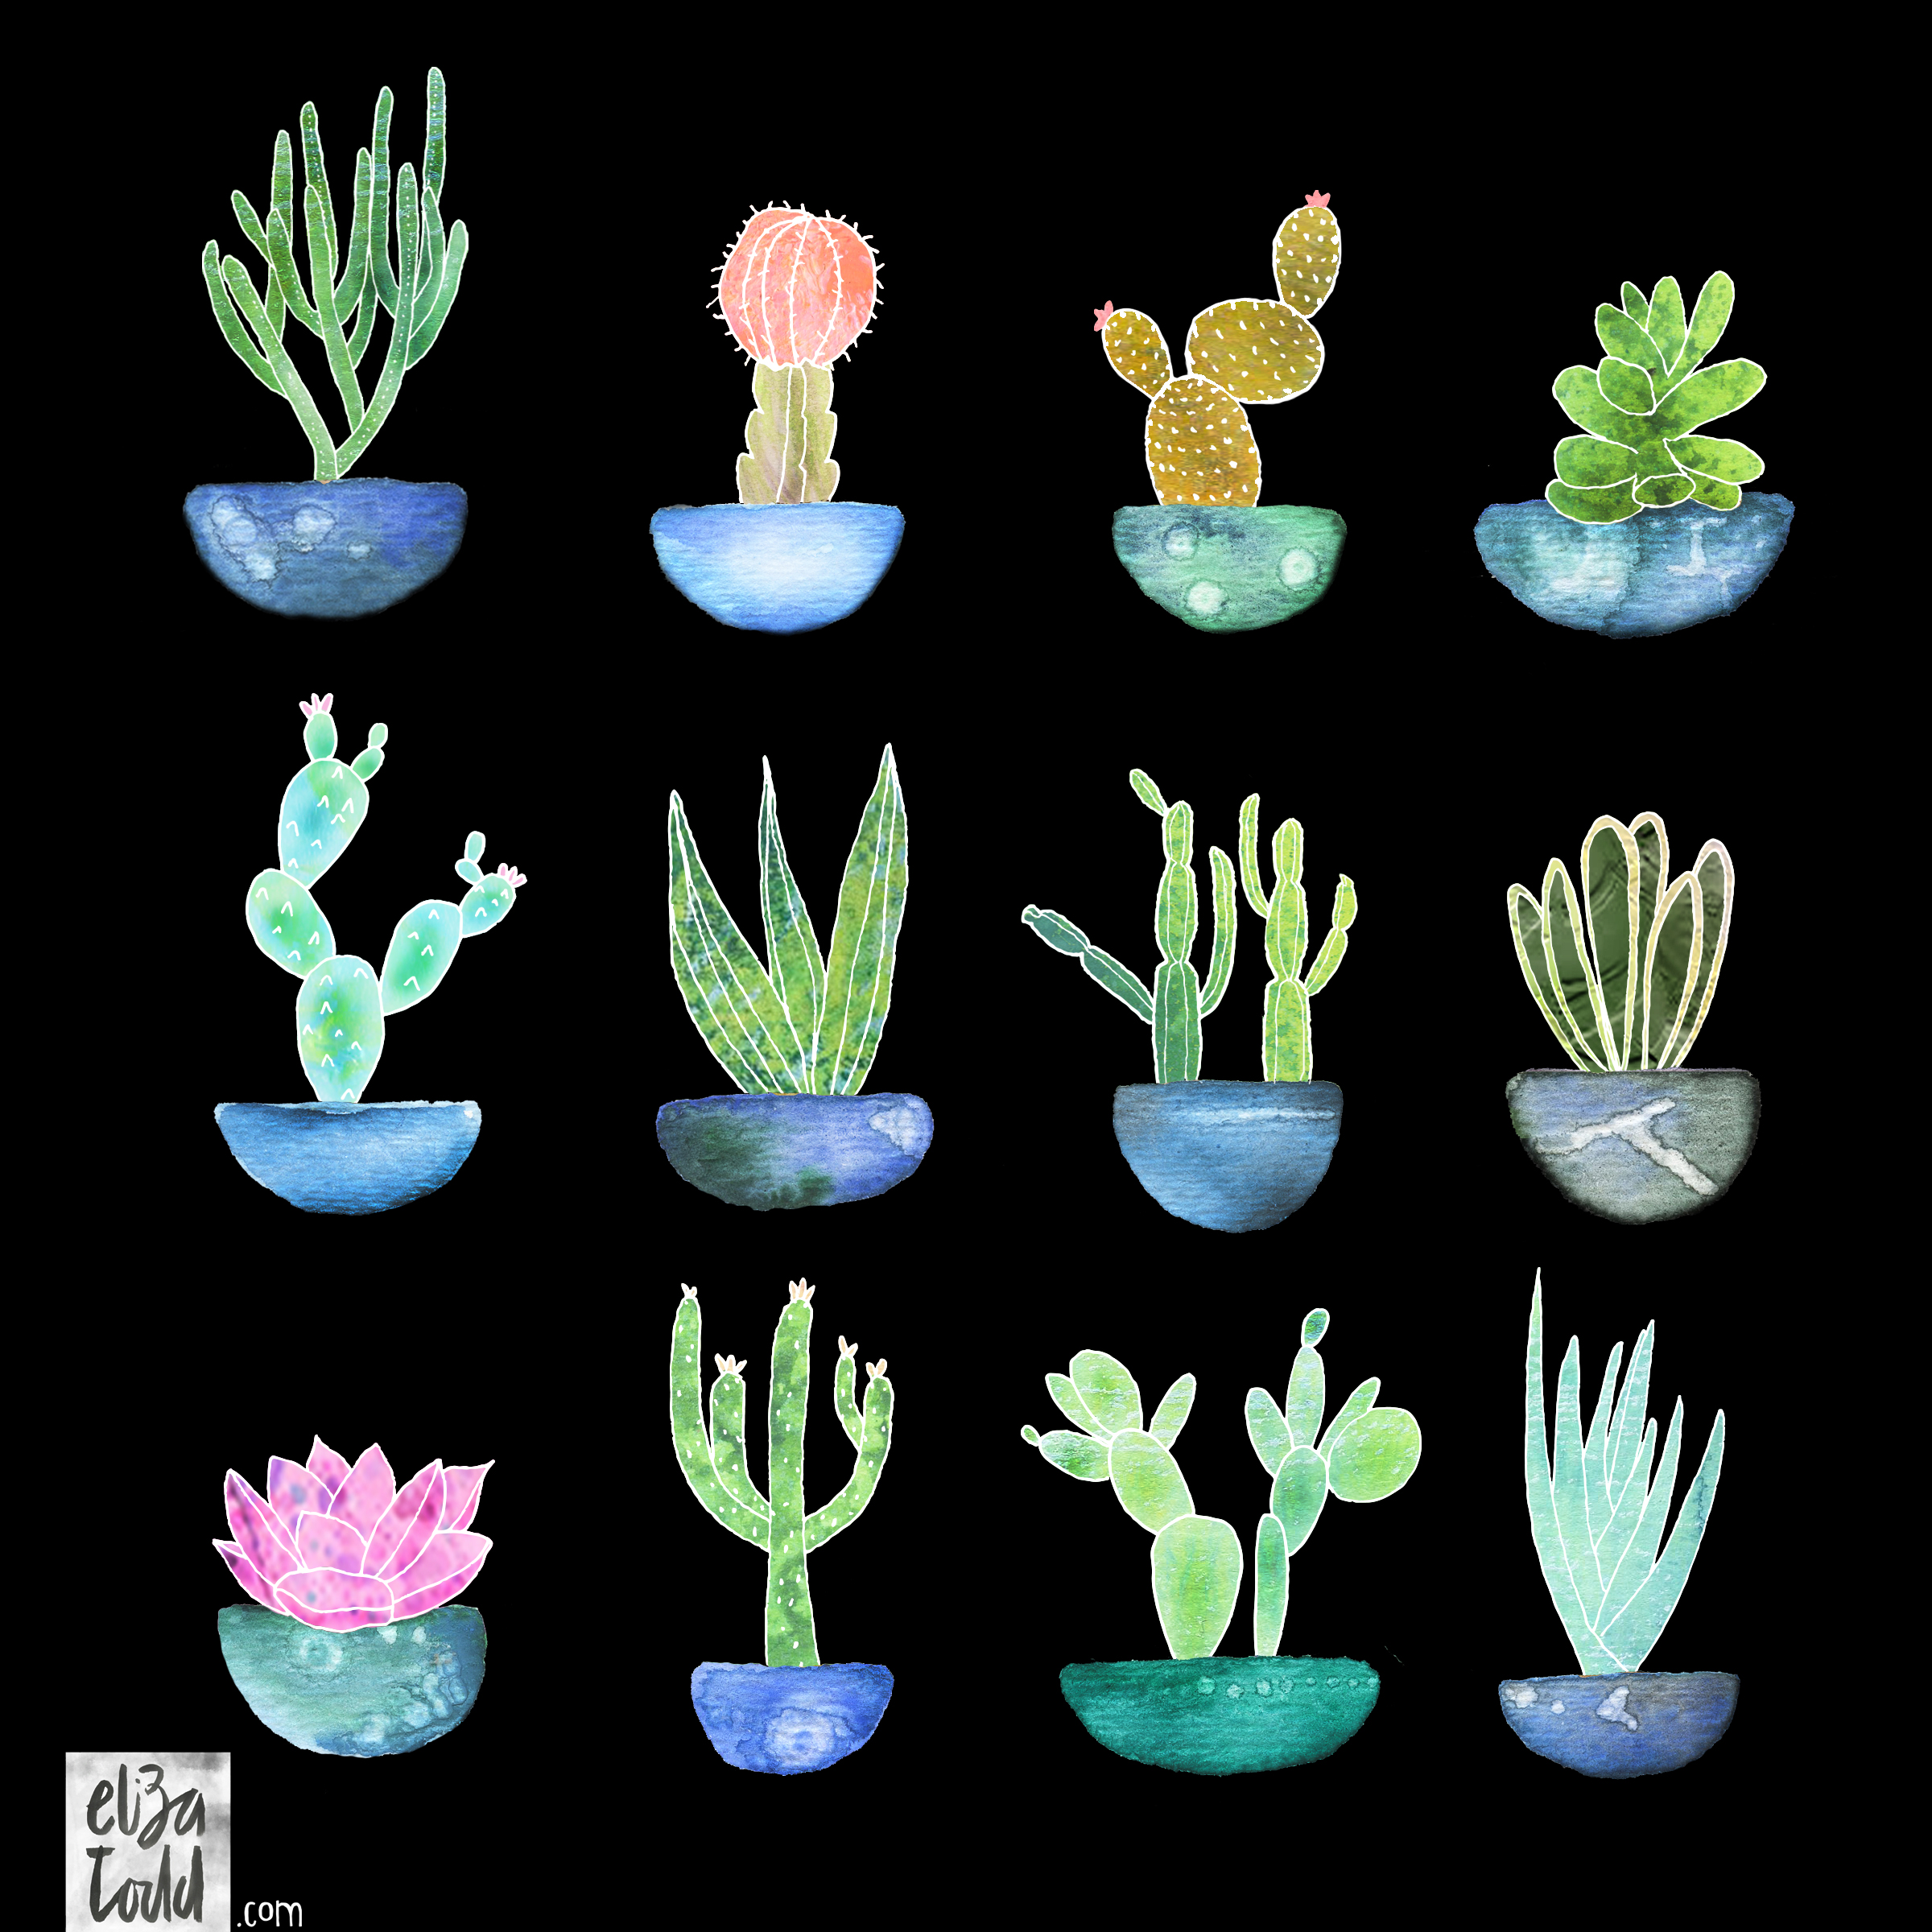 cactus-blues-in-black-and-colored.jpg